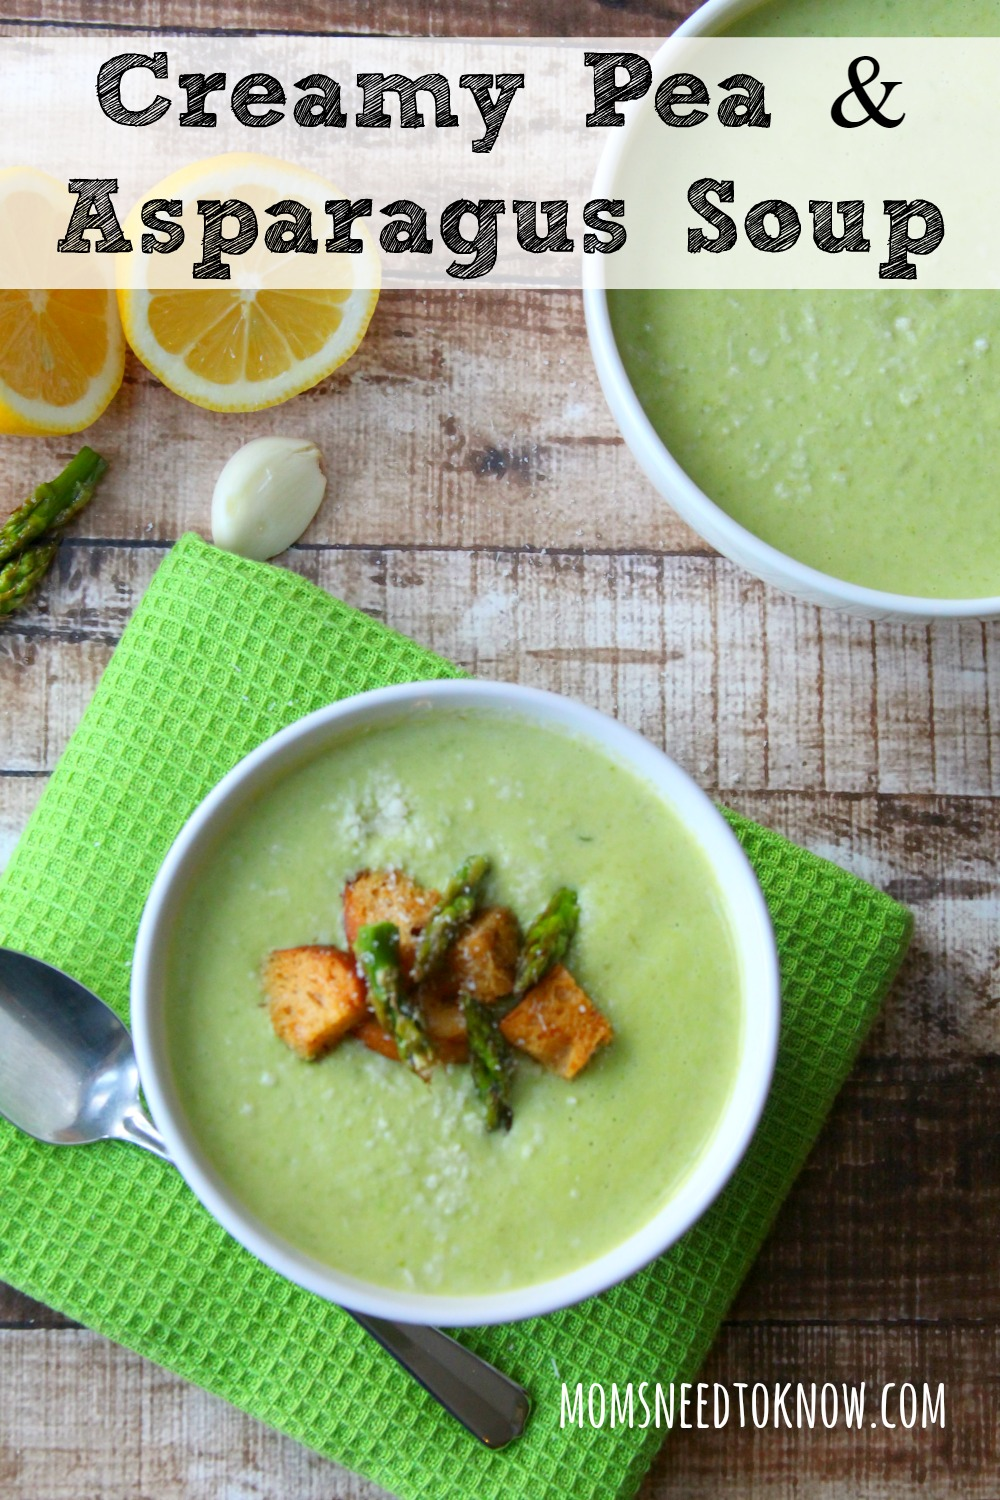 This creamy asparagus and pea soup is so easy to make and delicious served hot or cold! The baked asparagus gives this soup an incredible depth of flavor!